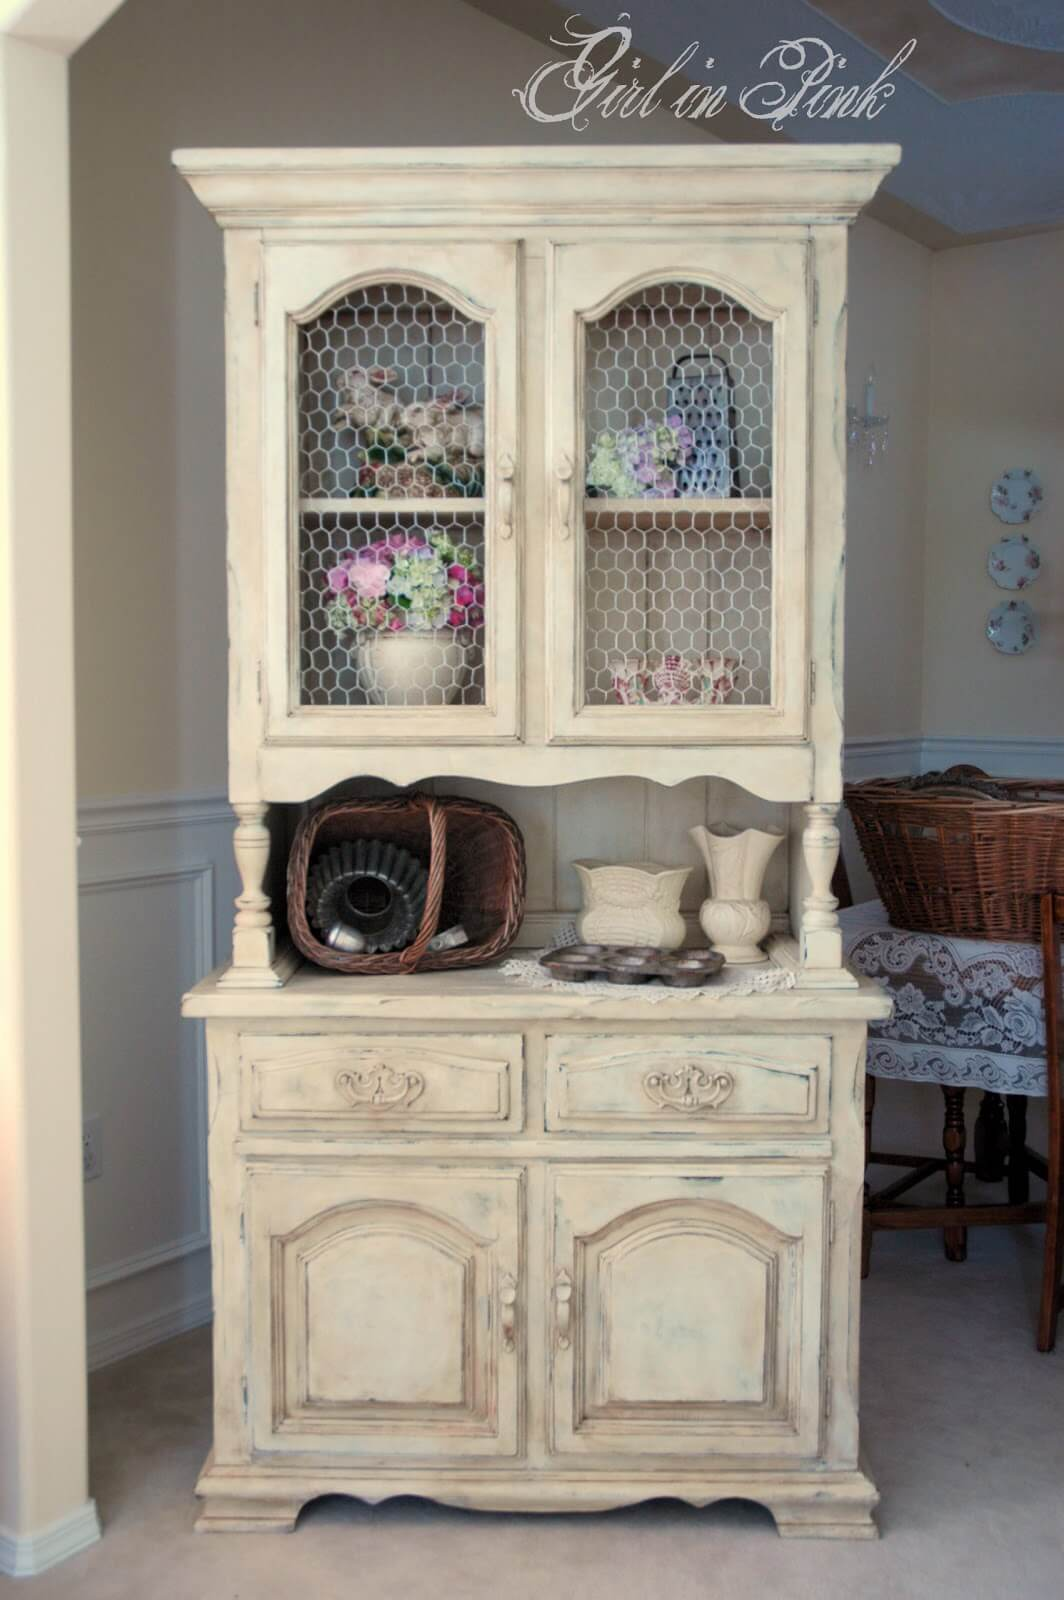 An Old-Fashioned Cupboard for Plates and Decor